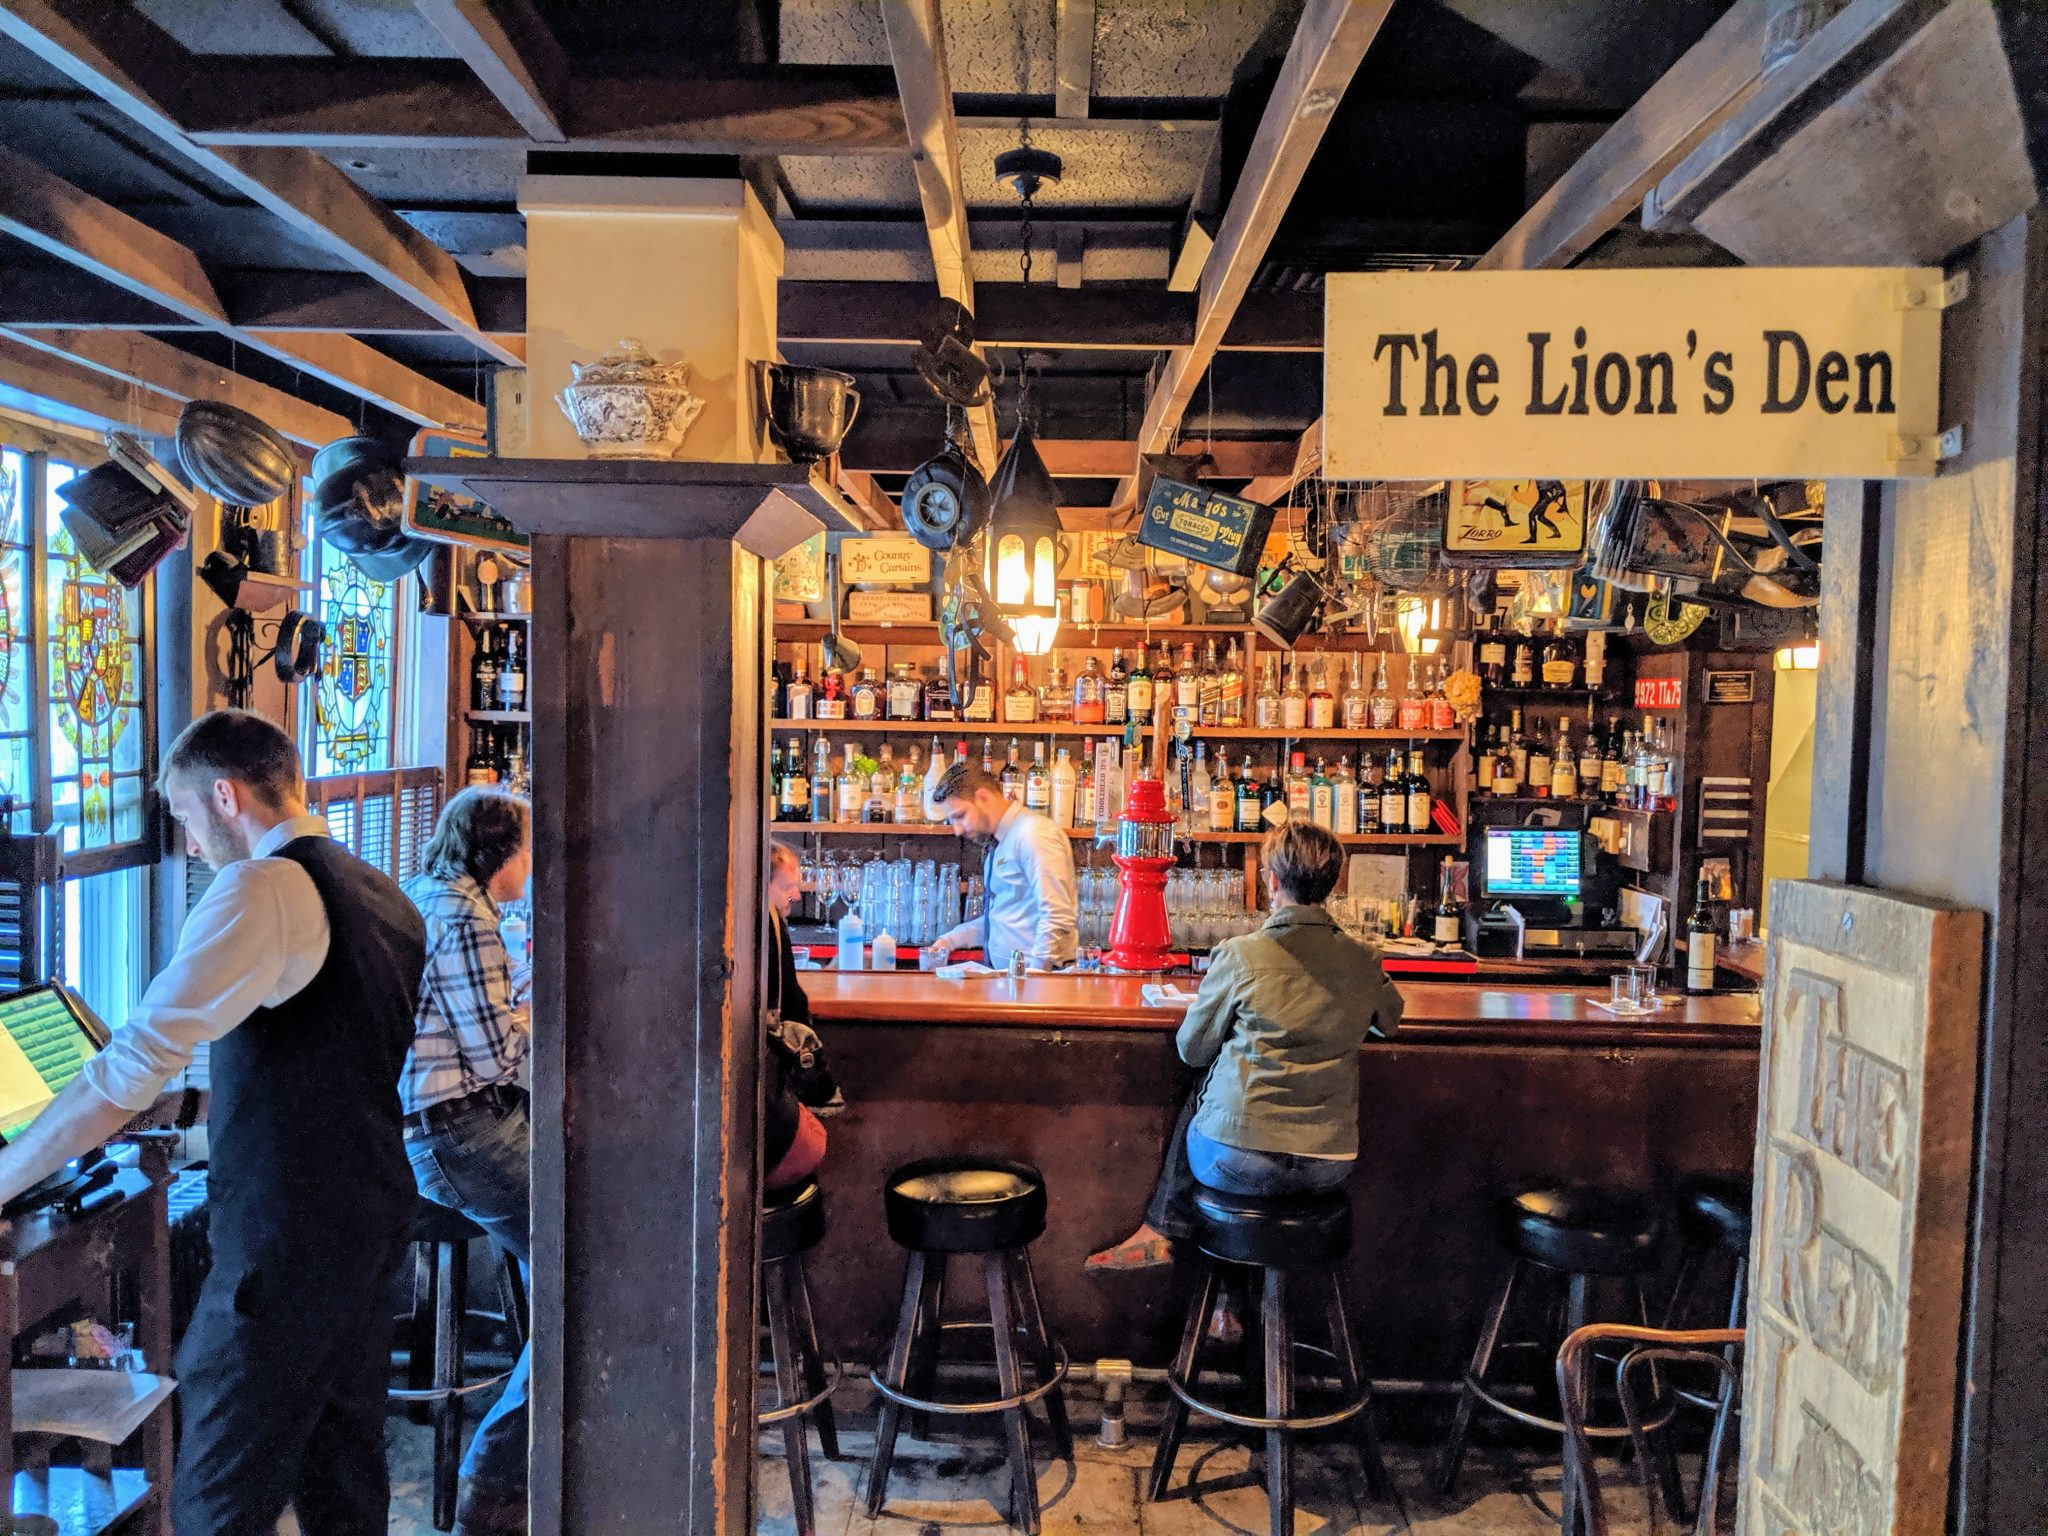 The Lion's Den